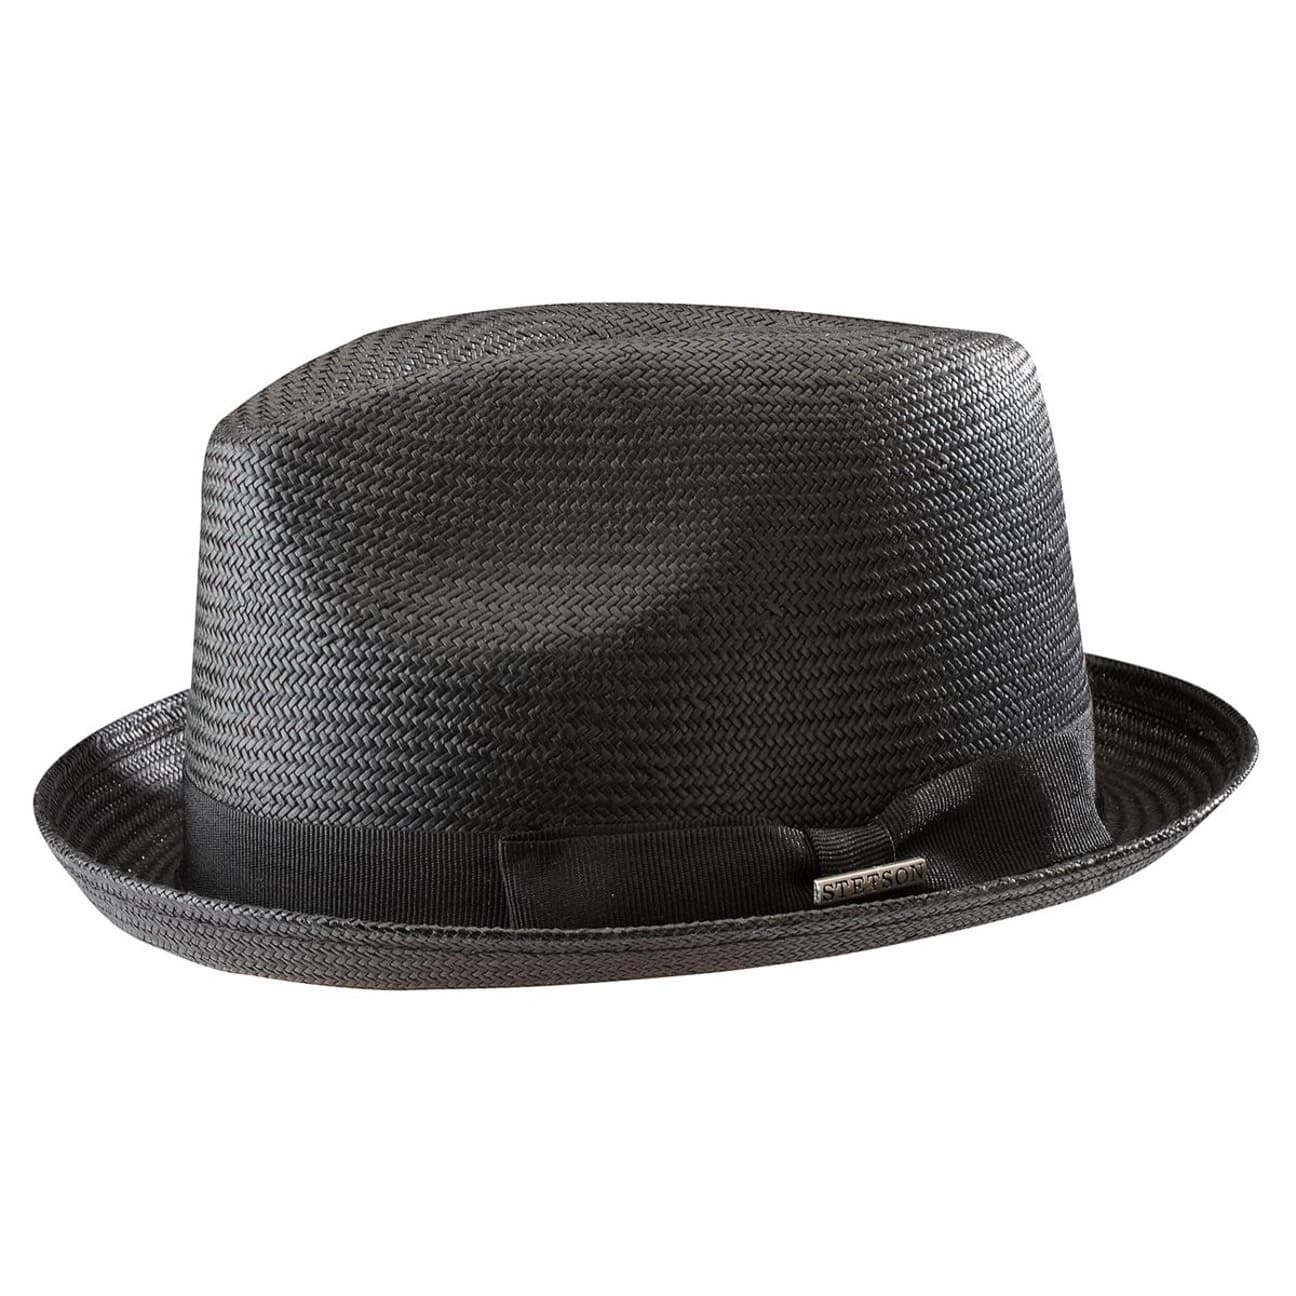 Pelham Toyo Player Straw Hat by Stetson  men?s hat